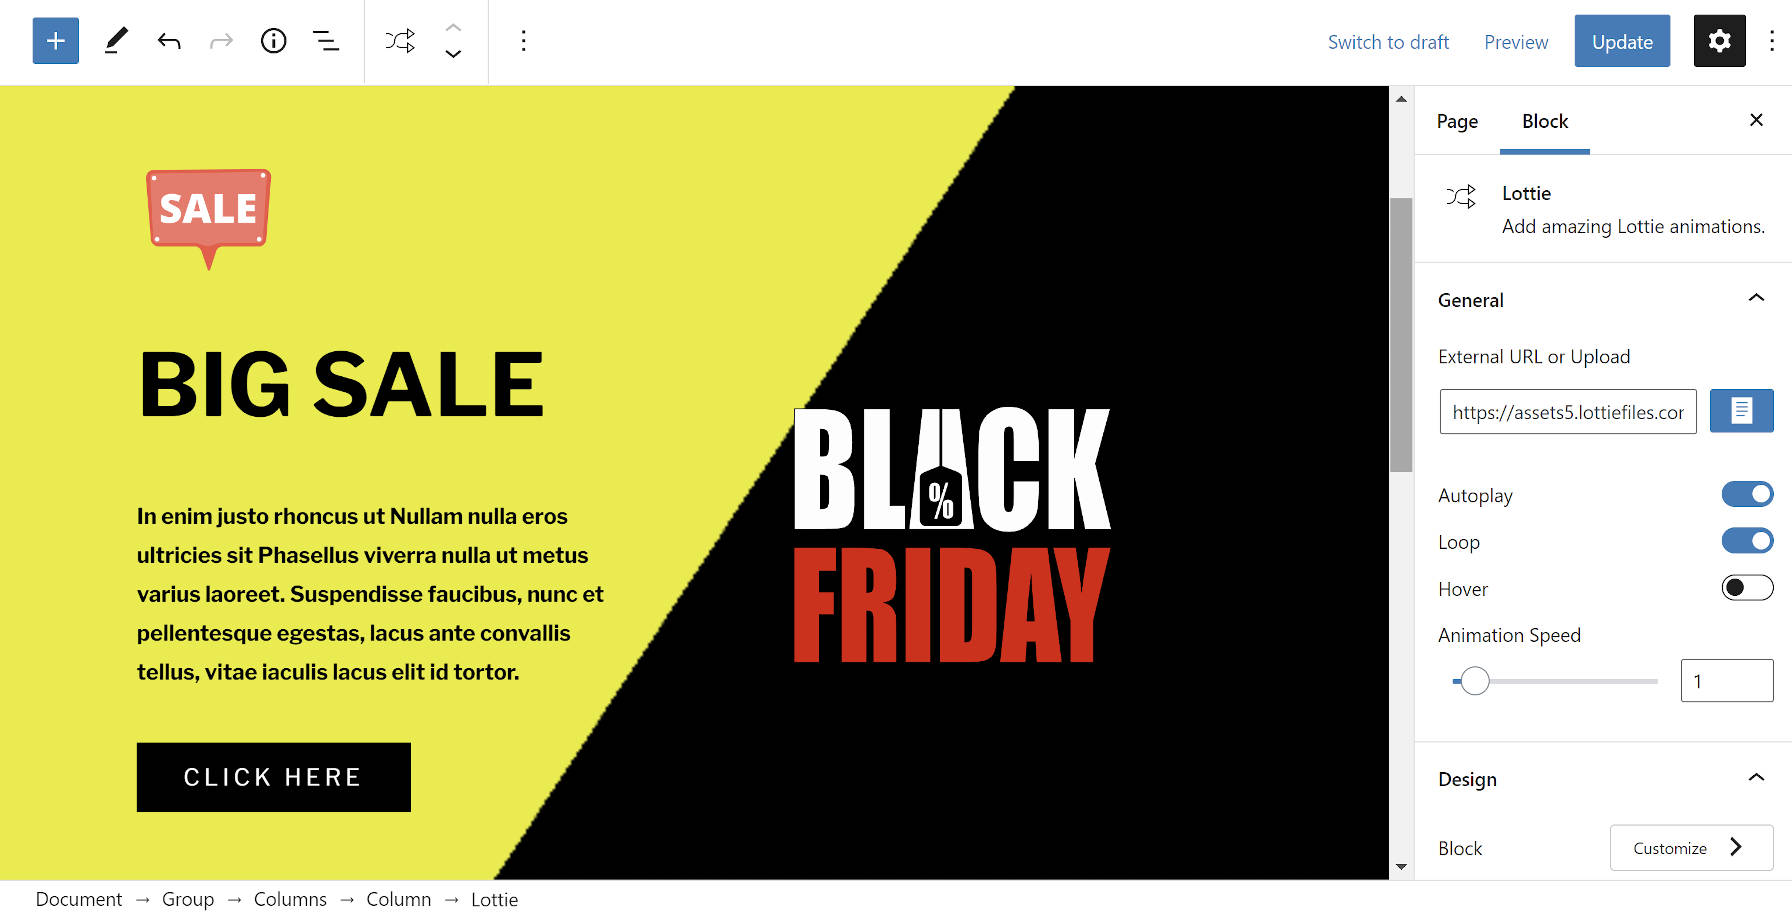 Screenshot of a Black Friday Lottie animation block pattern from Gutenberg Hub.